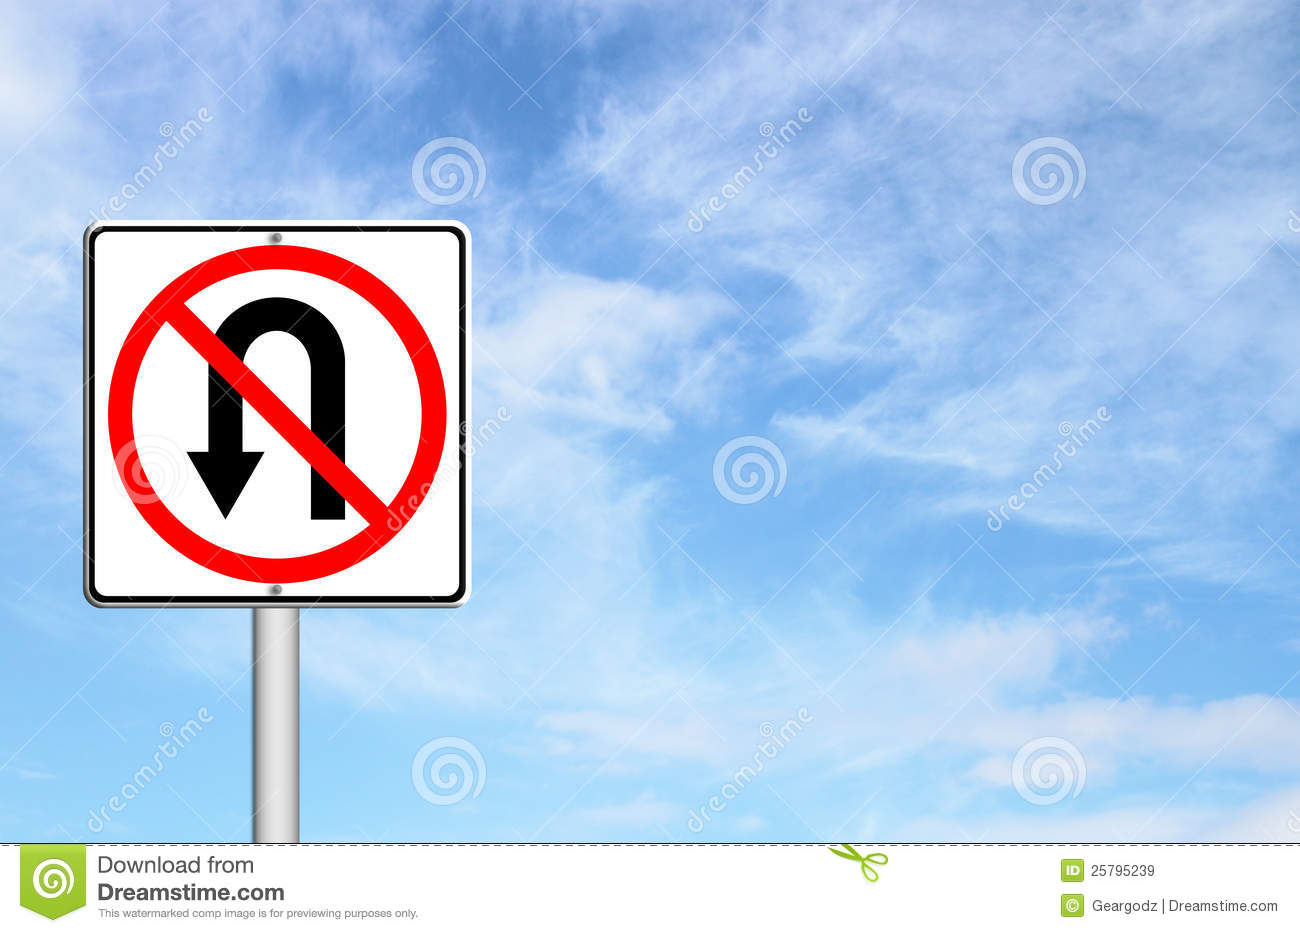 no return back road sign stock illustration illustration of